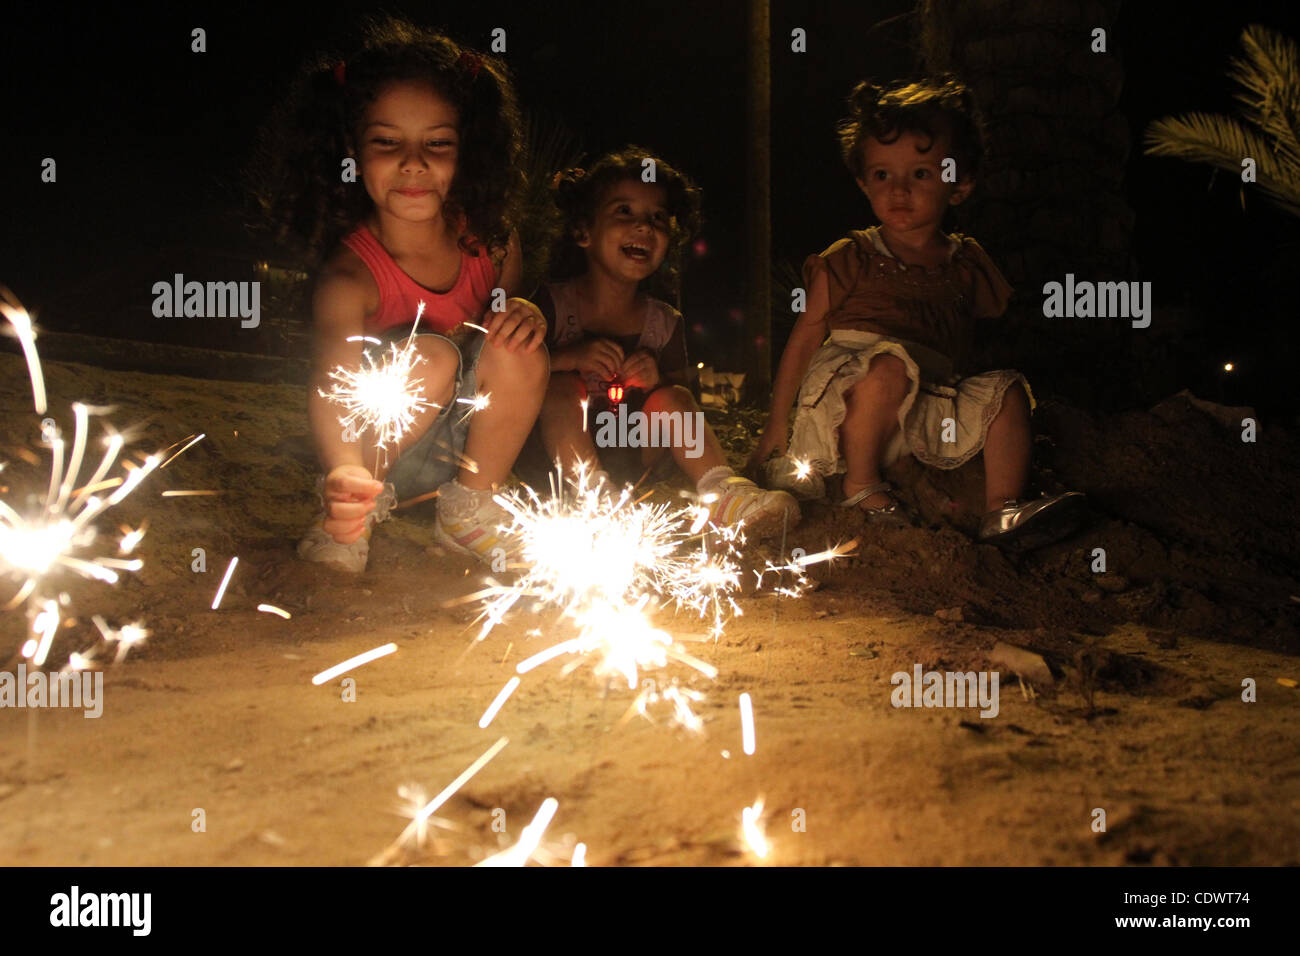 Palestinian Children Enjoy Playing With Fire Crackers